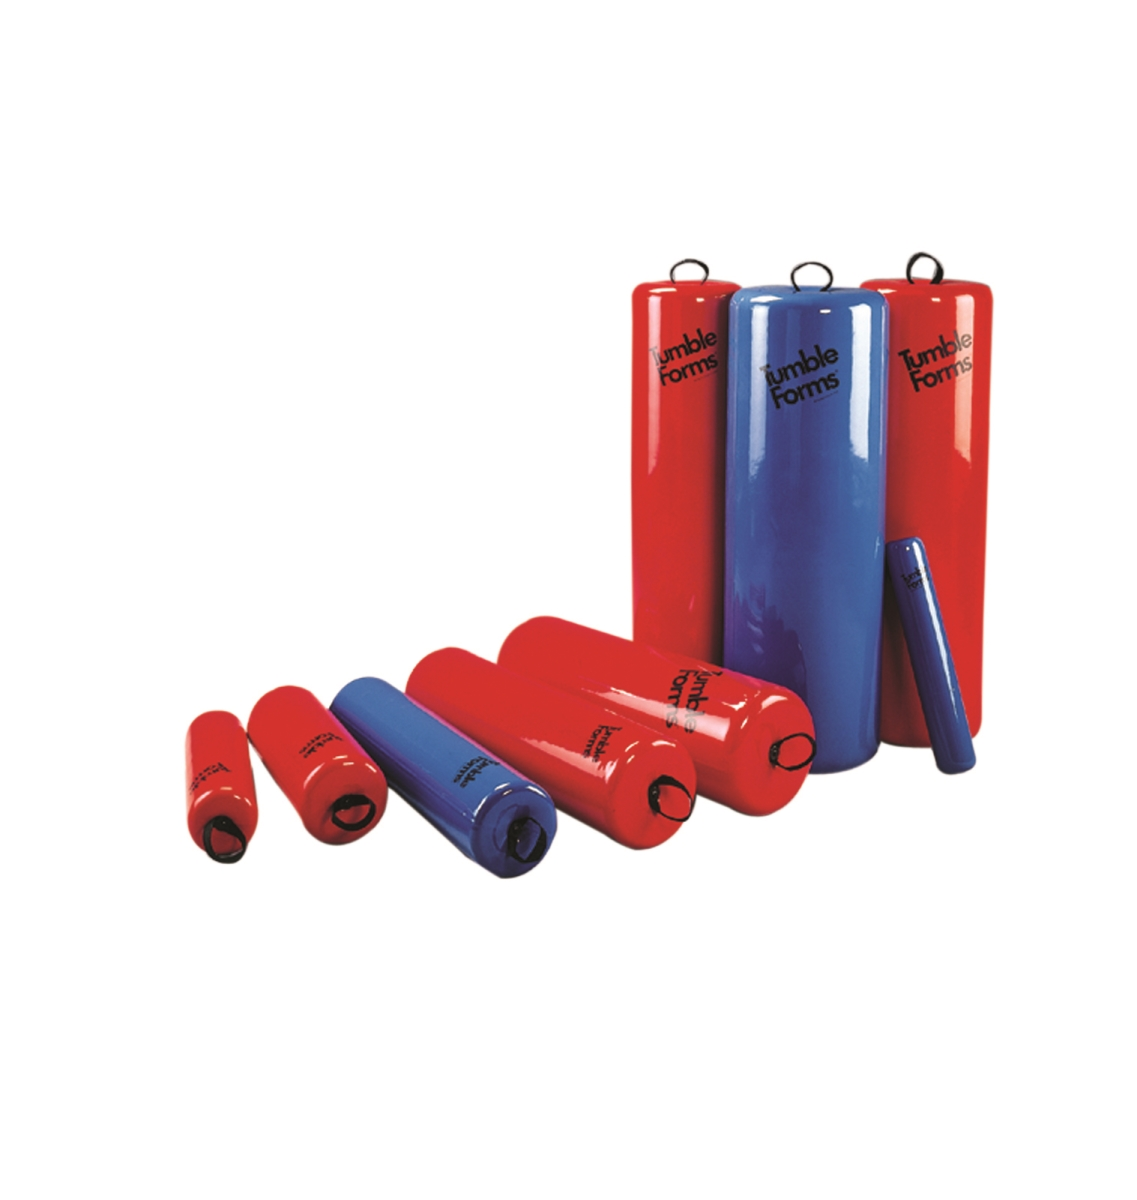 Tumble Forms 30-3000 4 x 24 in. Standard Positioning Roll